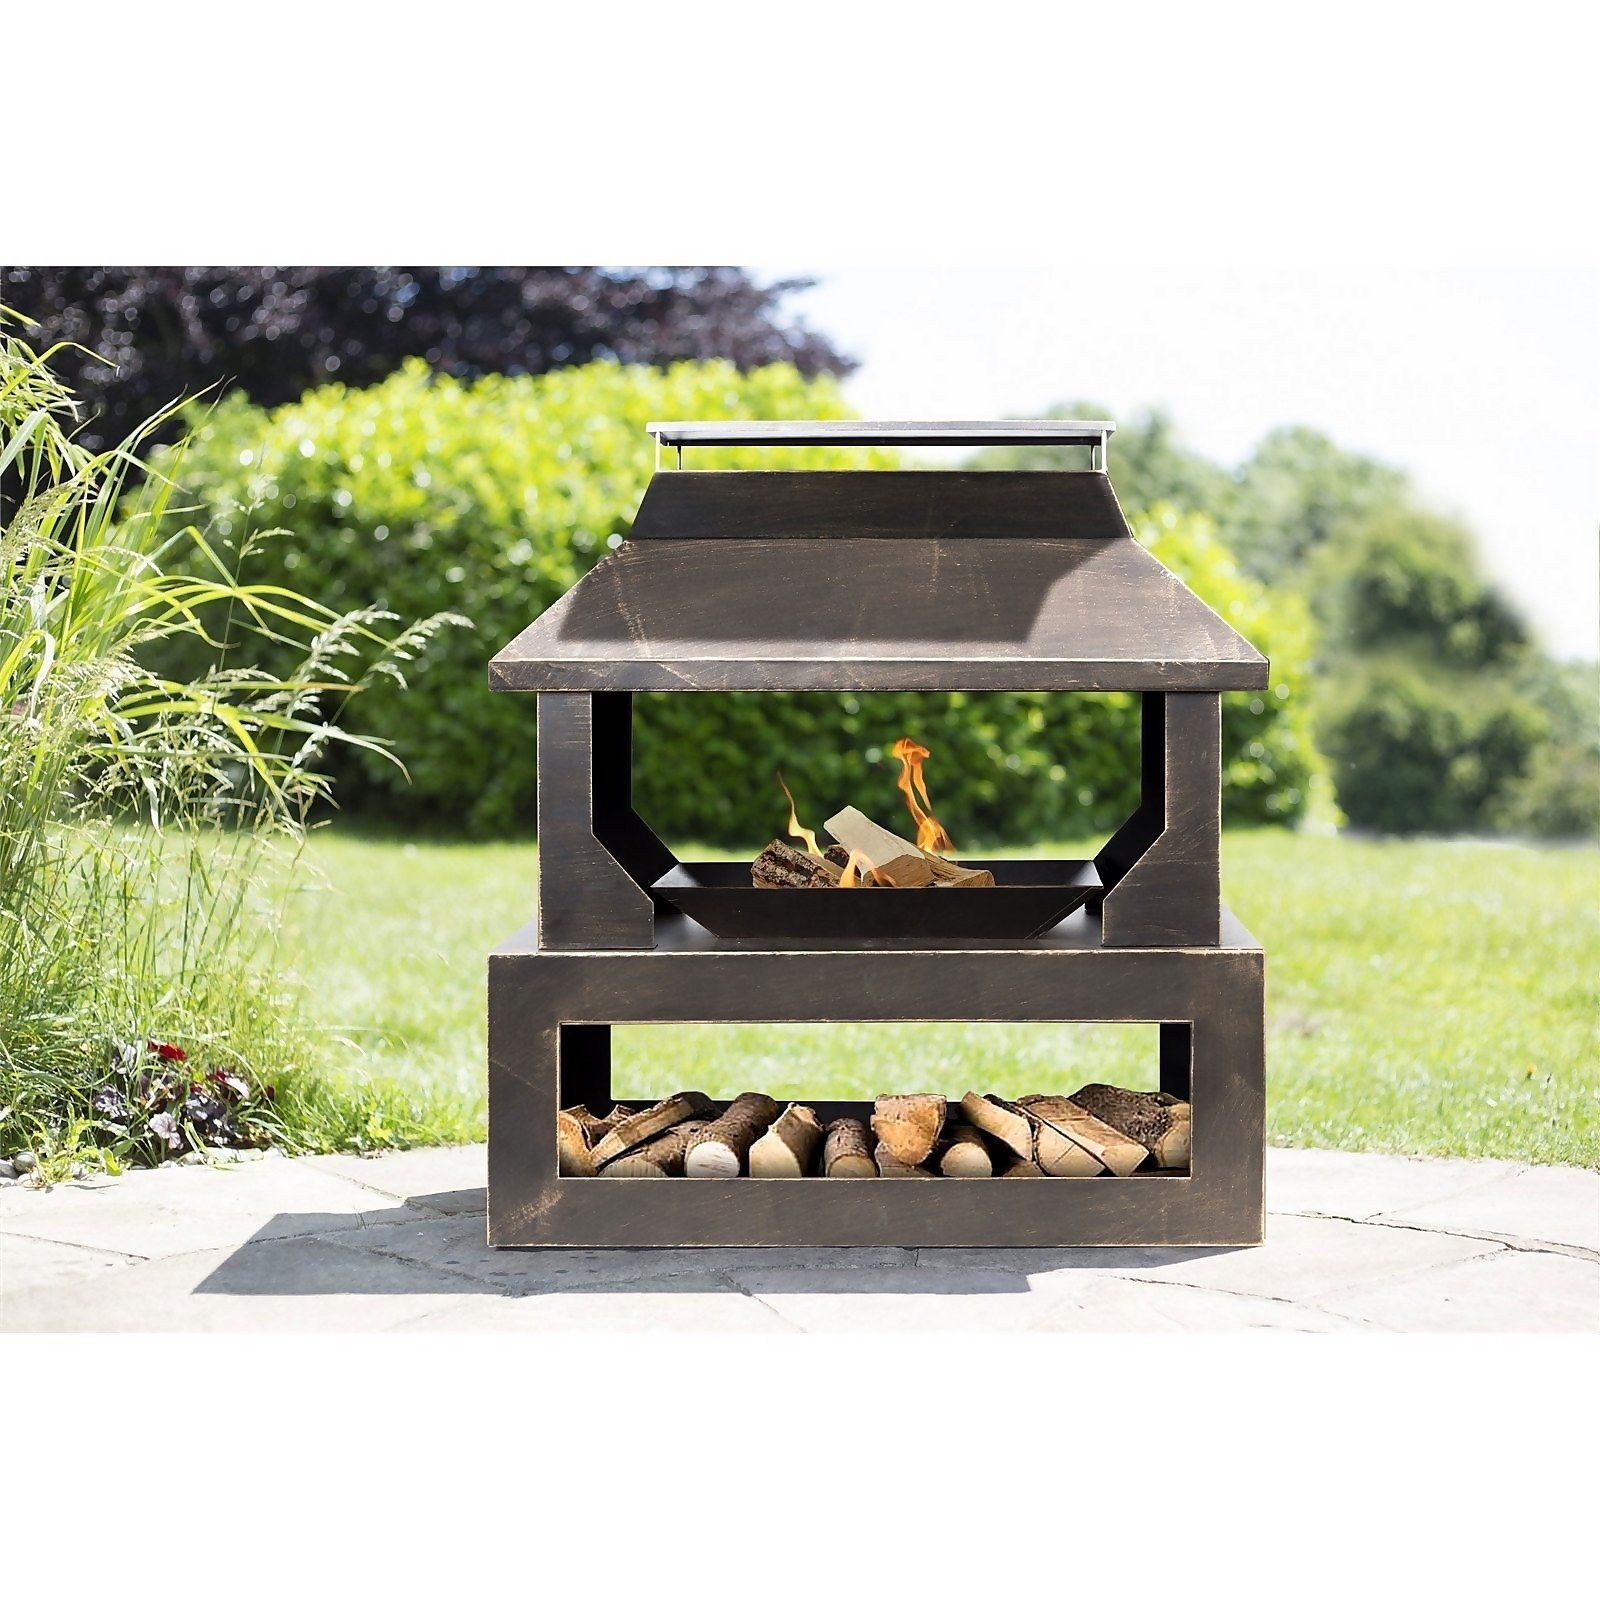 Fire Pits: 22 Of The Best For Garden Hosting in 2021